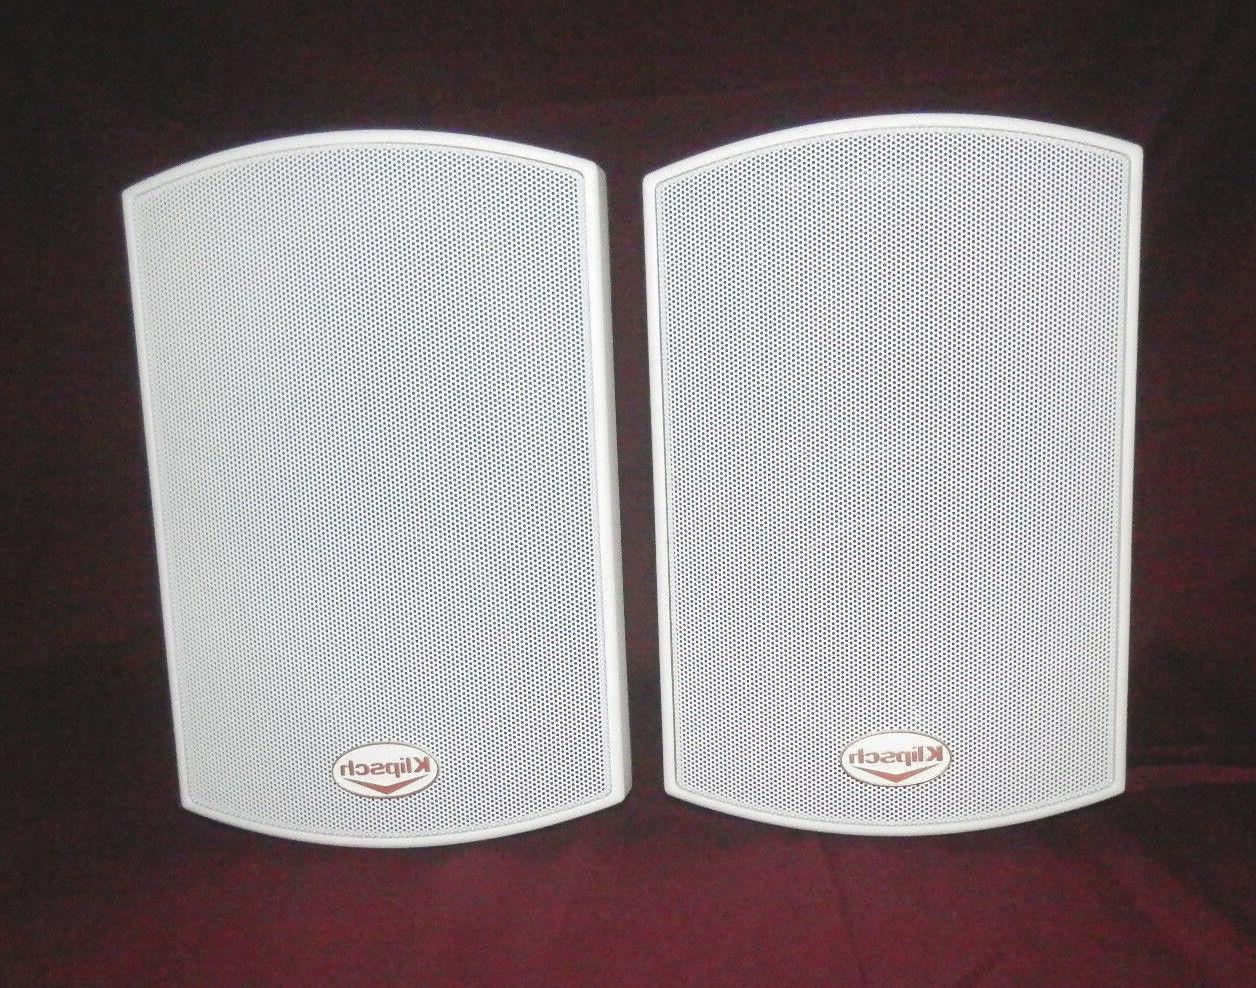 2 white speackers aw 400 indoor outdoor